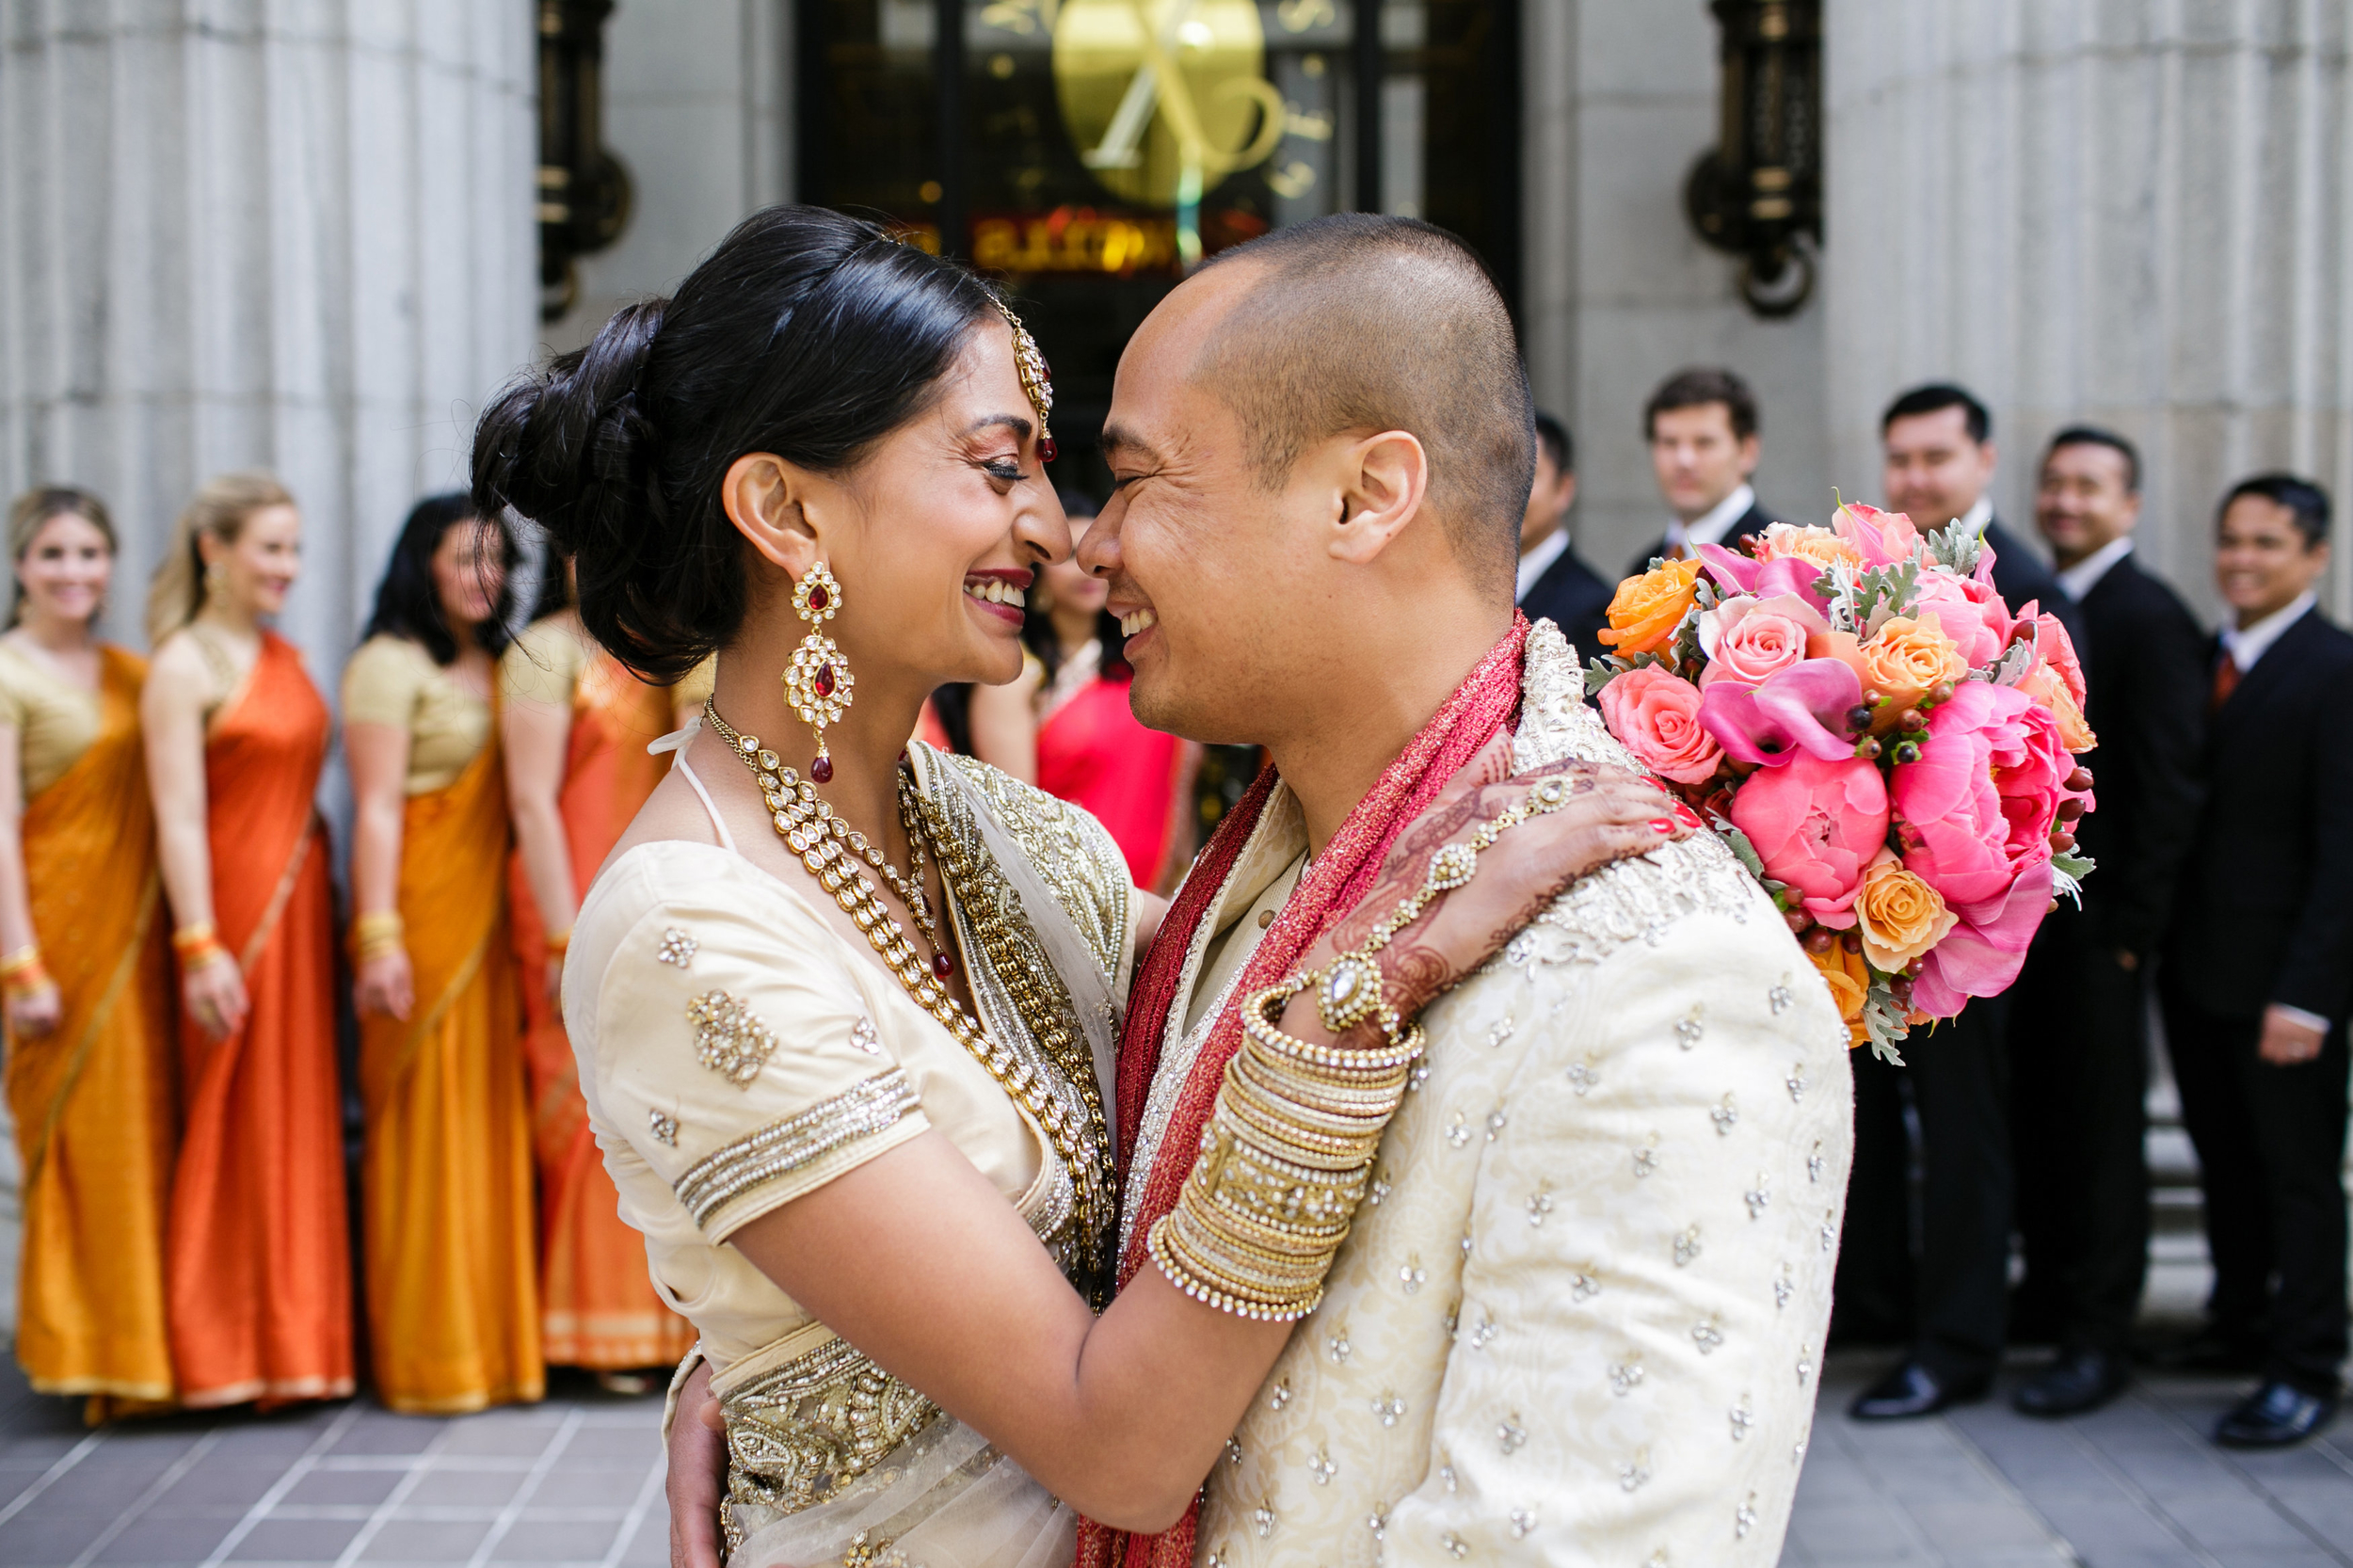 AnaisEvents_JihanCerdaPhotography_Priya-and-Jason - 036.jpg